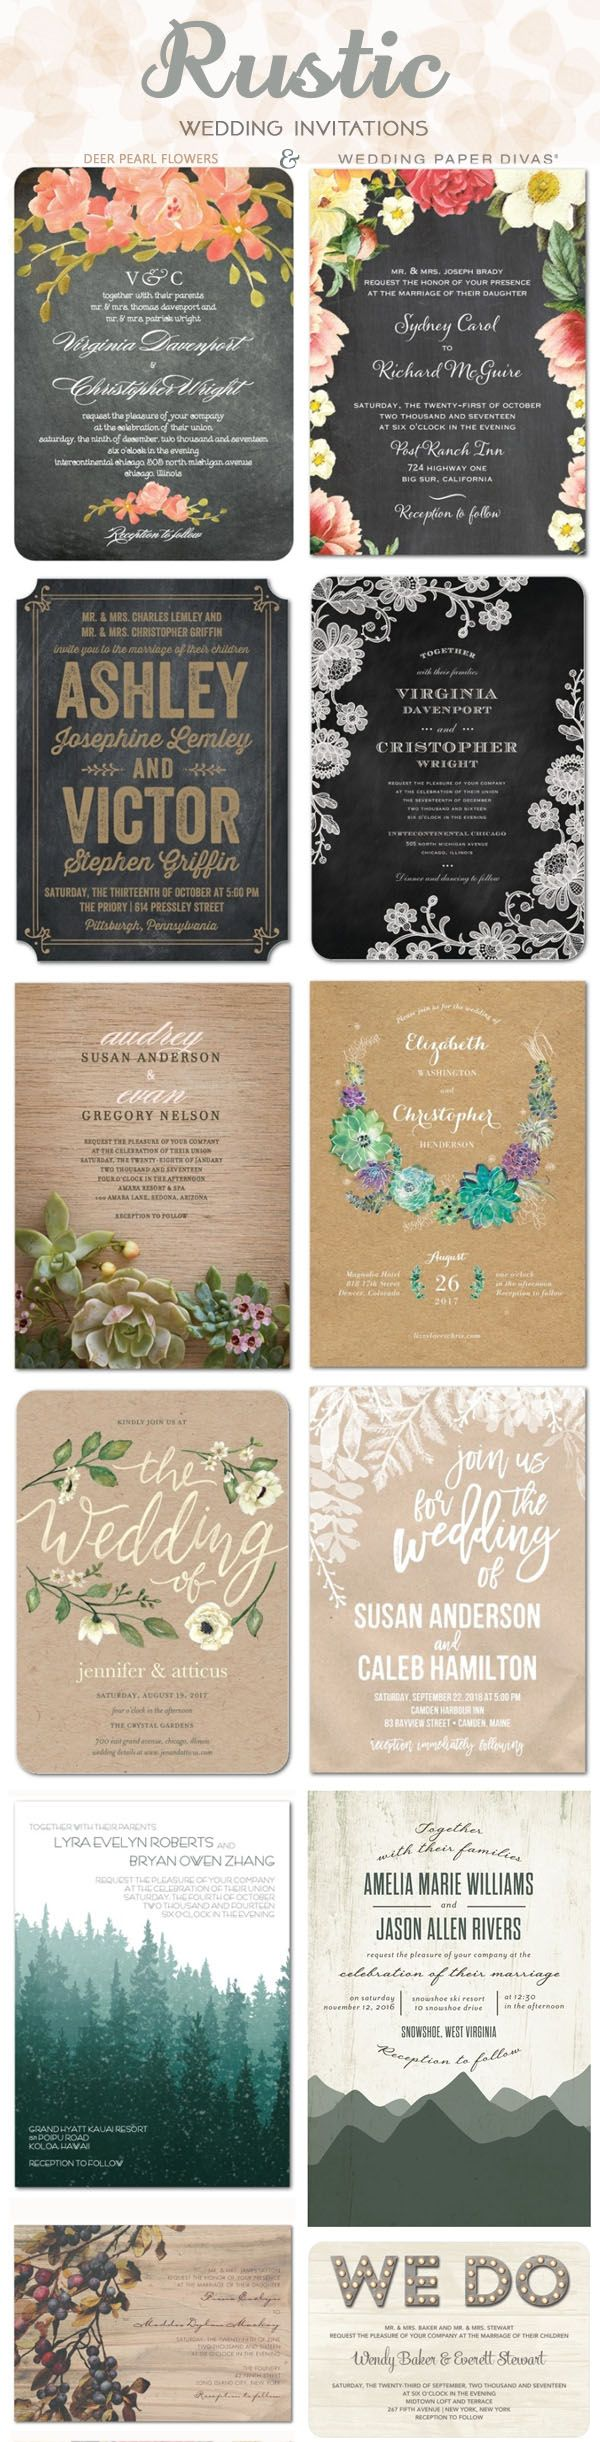 Top 8 Themed Shutterfly Wedding Invitations Country InvitationsWedding Paper DivasRustic